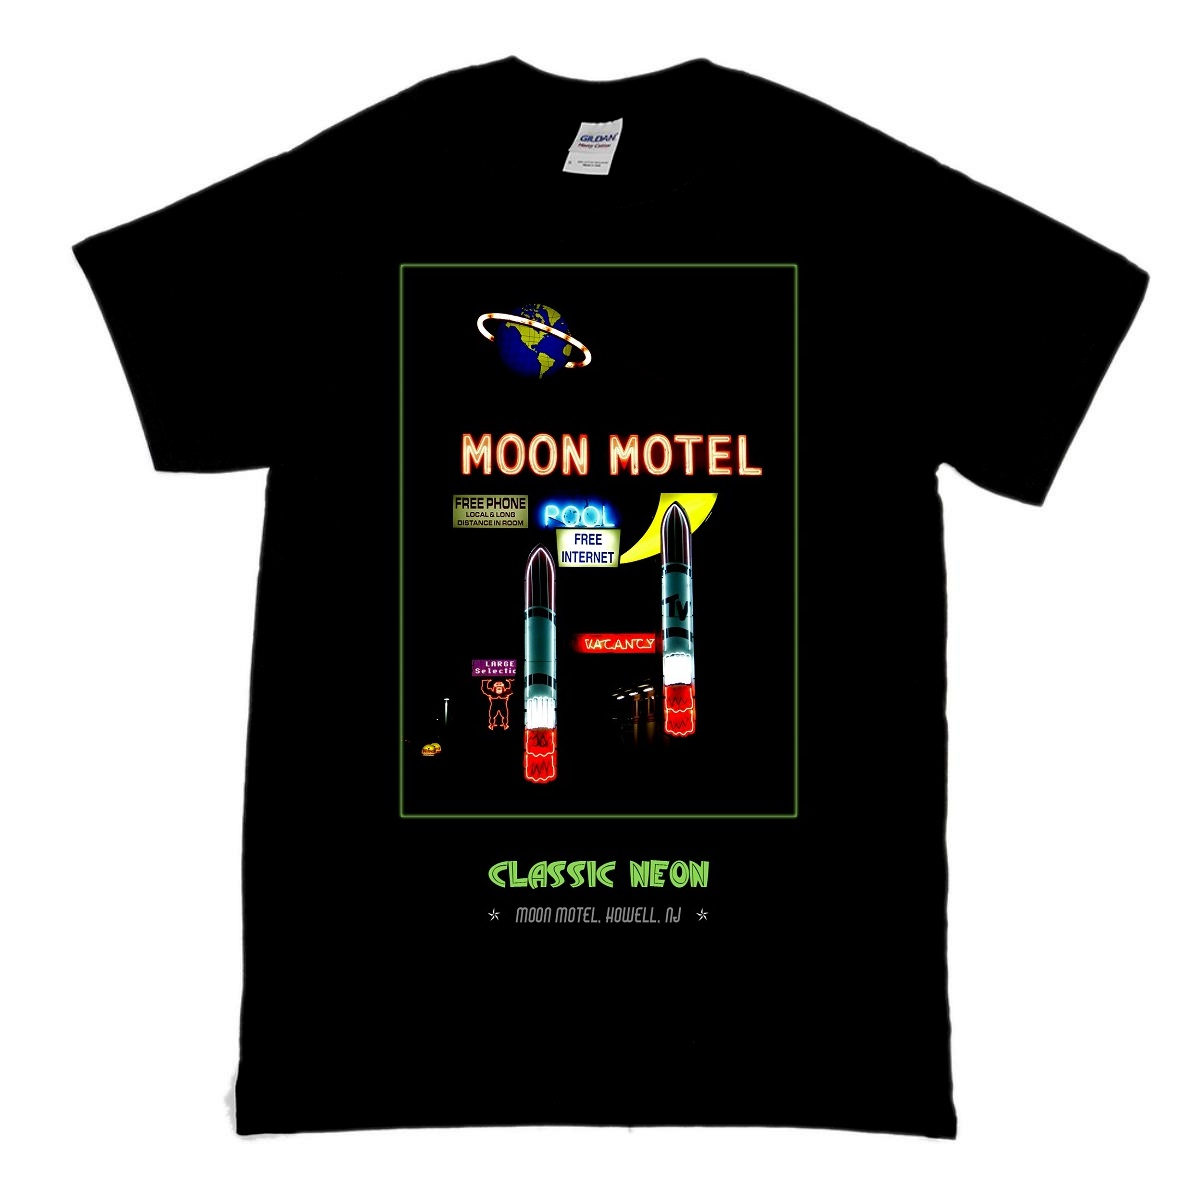 This is a classic cotton t-shirt with a design showing the vintage space age neon sign for the Moon Motel in Howell NJ